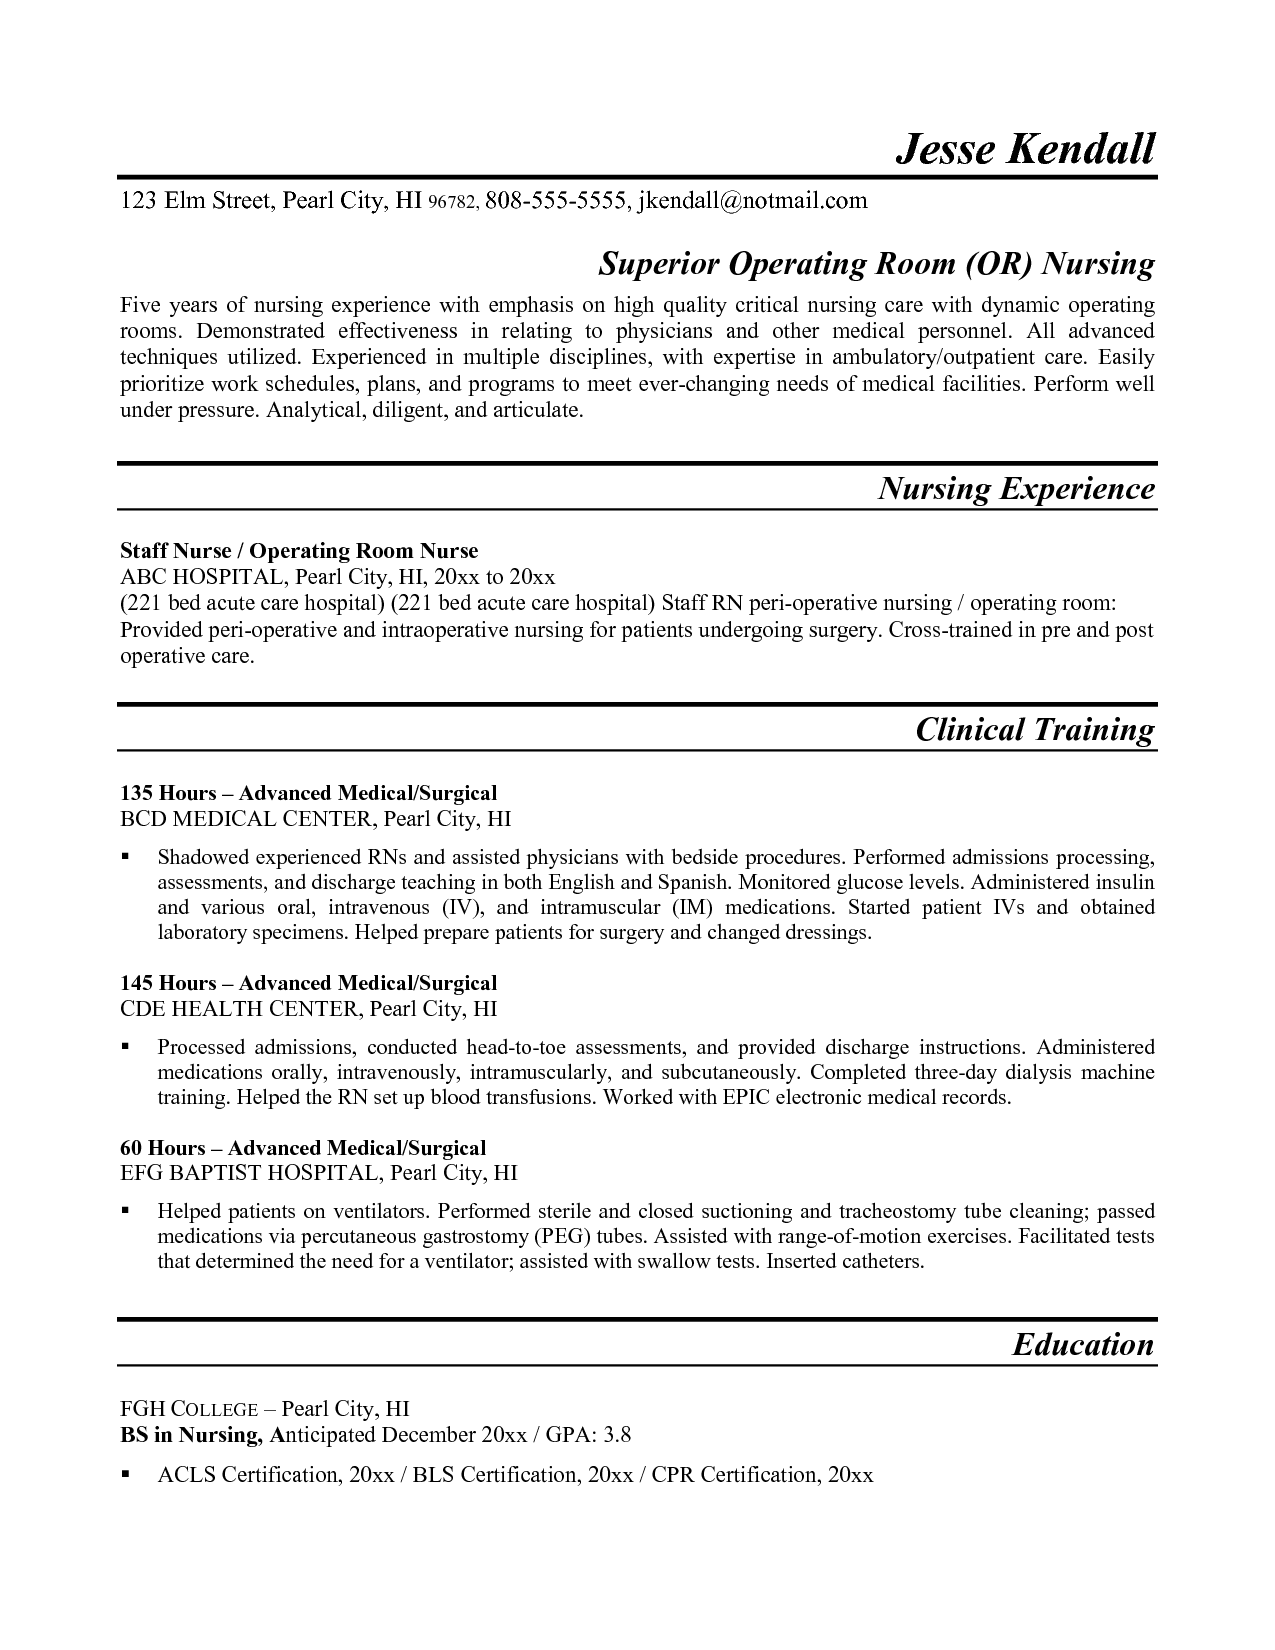 How To Set Up Resume Classy Operating Room Nurse Resume  Httpwwwresumecareeroperating